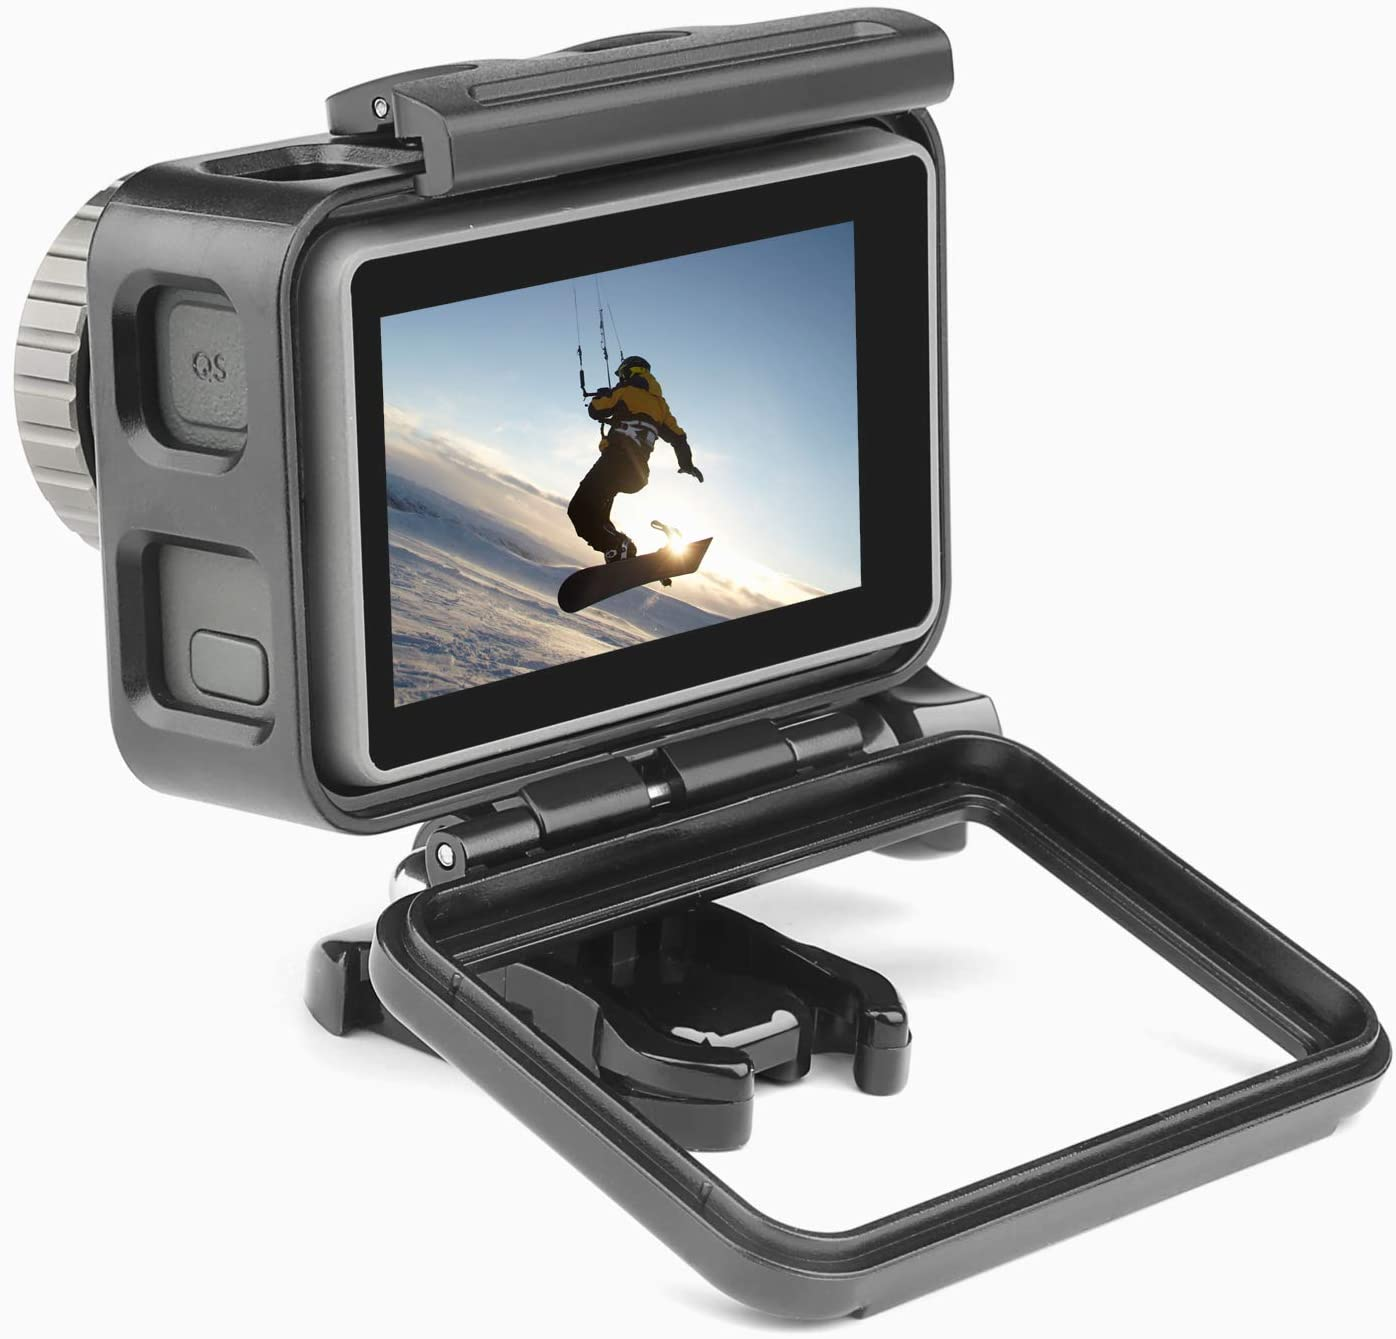 D/&F Frame Case Housing for DJI OSMO Action Camera Protective Skeloton Shell Cage Cover DJI Camera Accesories